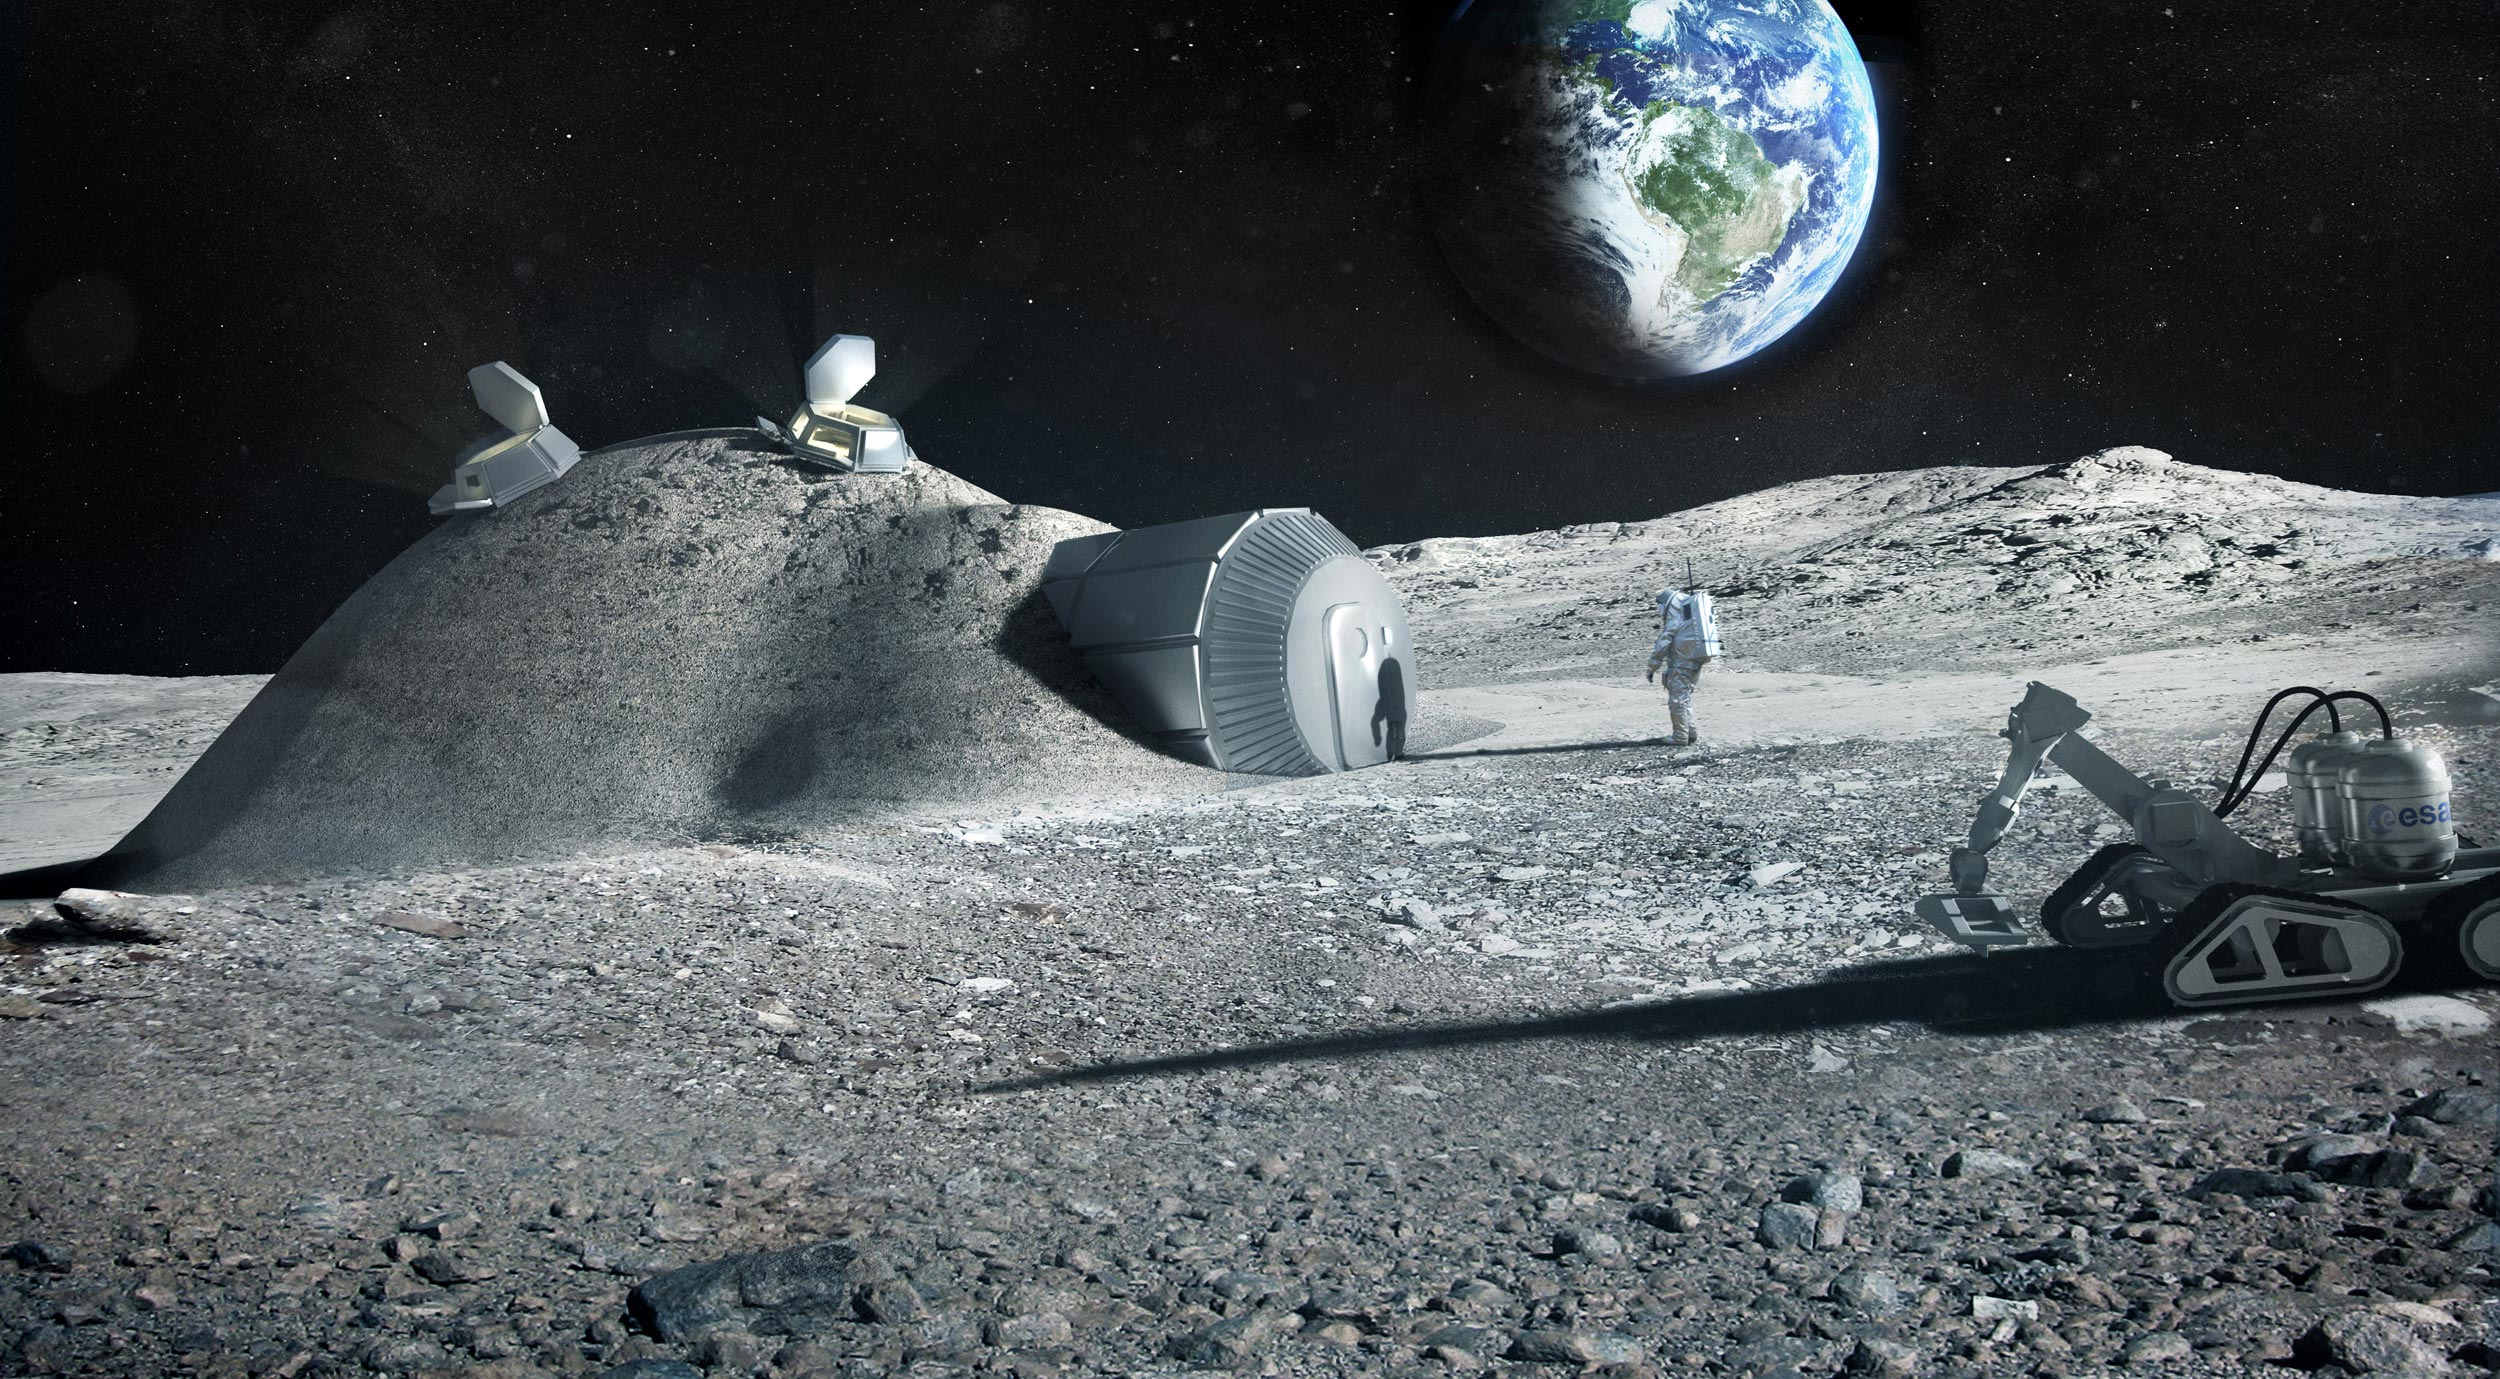 Urine, the future material to build new bases at the moon